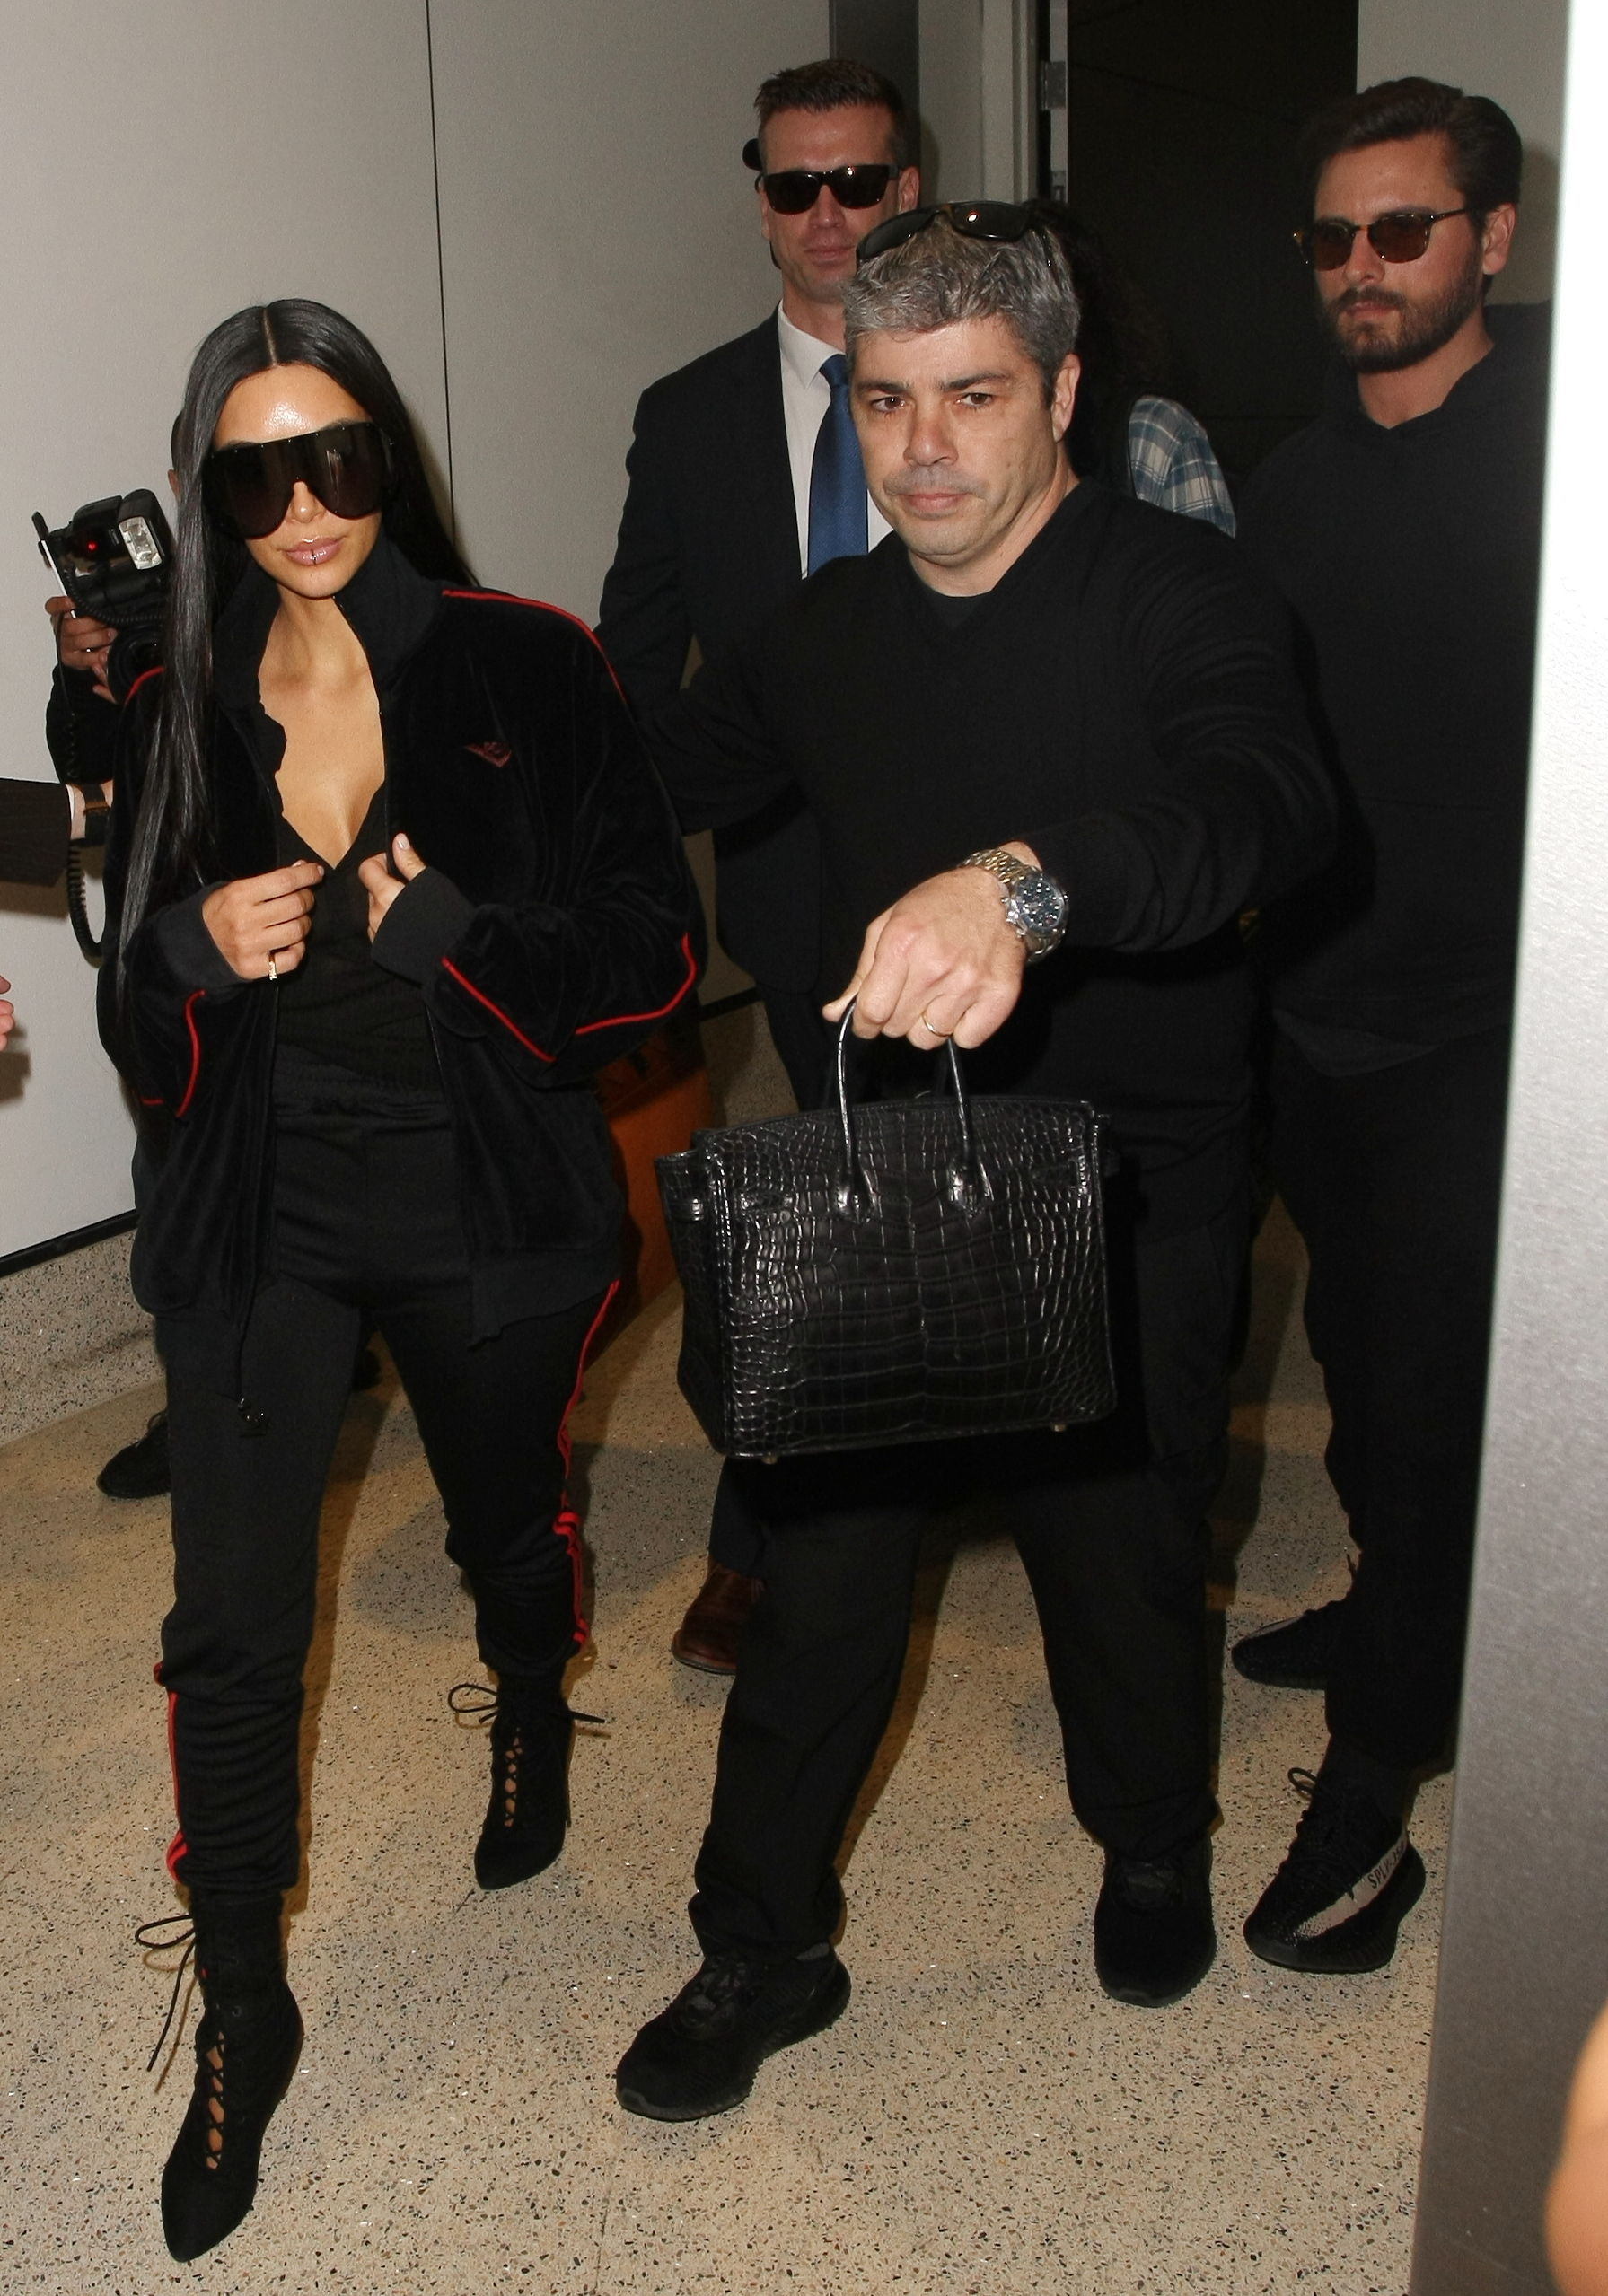 Kim Kardashian and Scott Disick jet out of LAX airport in Los Angeles. (Photo: Splash News)